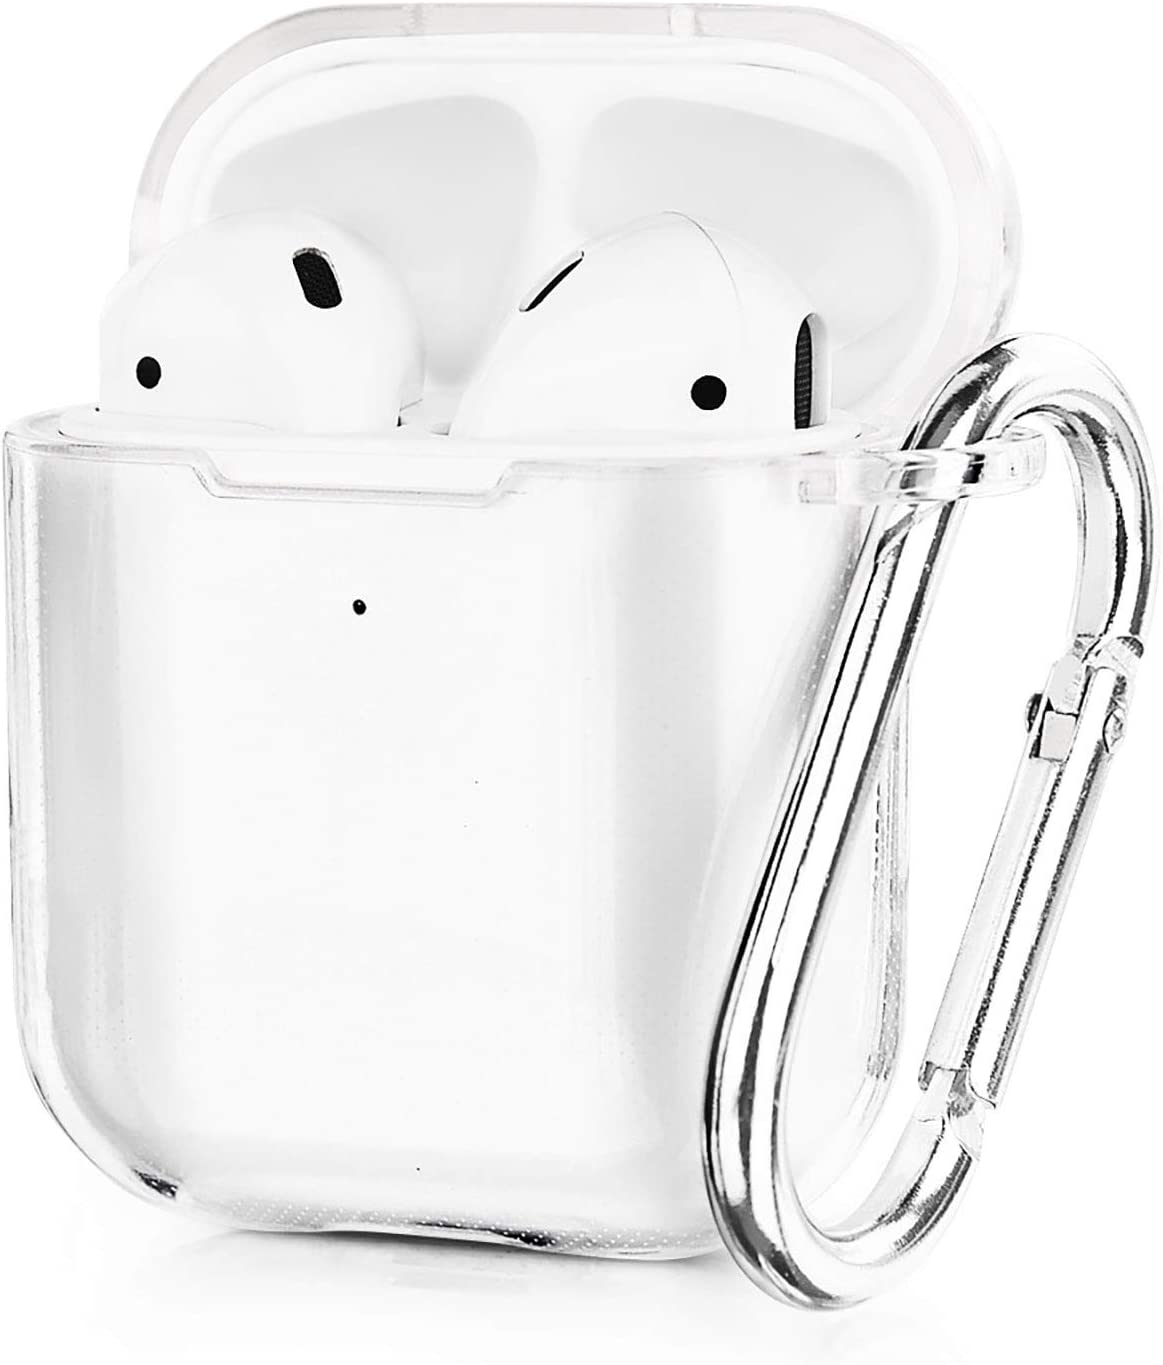 AIRSPO Airpods Case Cover, Clear Soft TPU Protective Cover Compatible with Apple AirPods 1/2 Wireless Charging Case with Keychain (Clear)